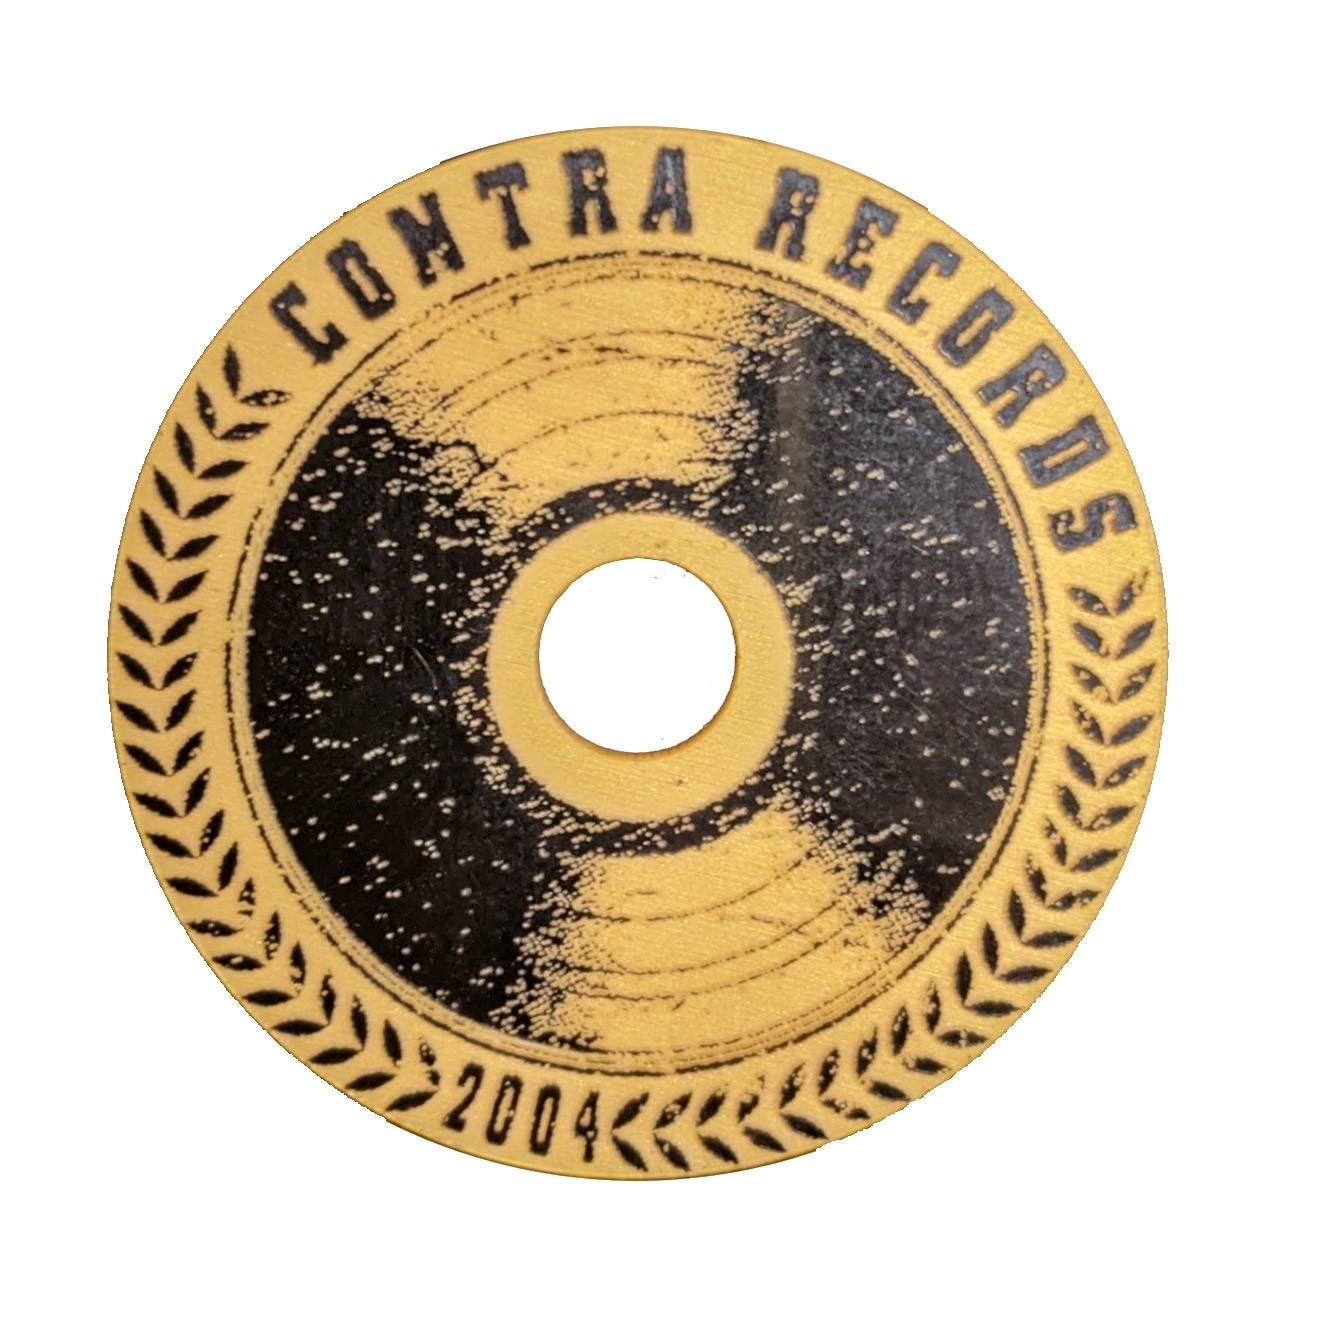 """Contra Records - """"Vinyl since 2004"""" - Single 45rpm Adapter gold/black"""